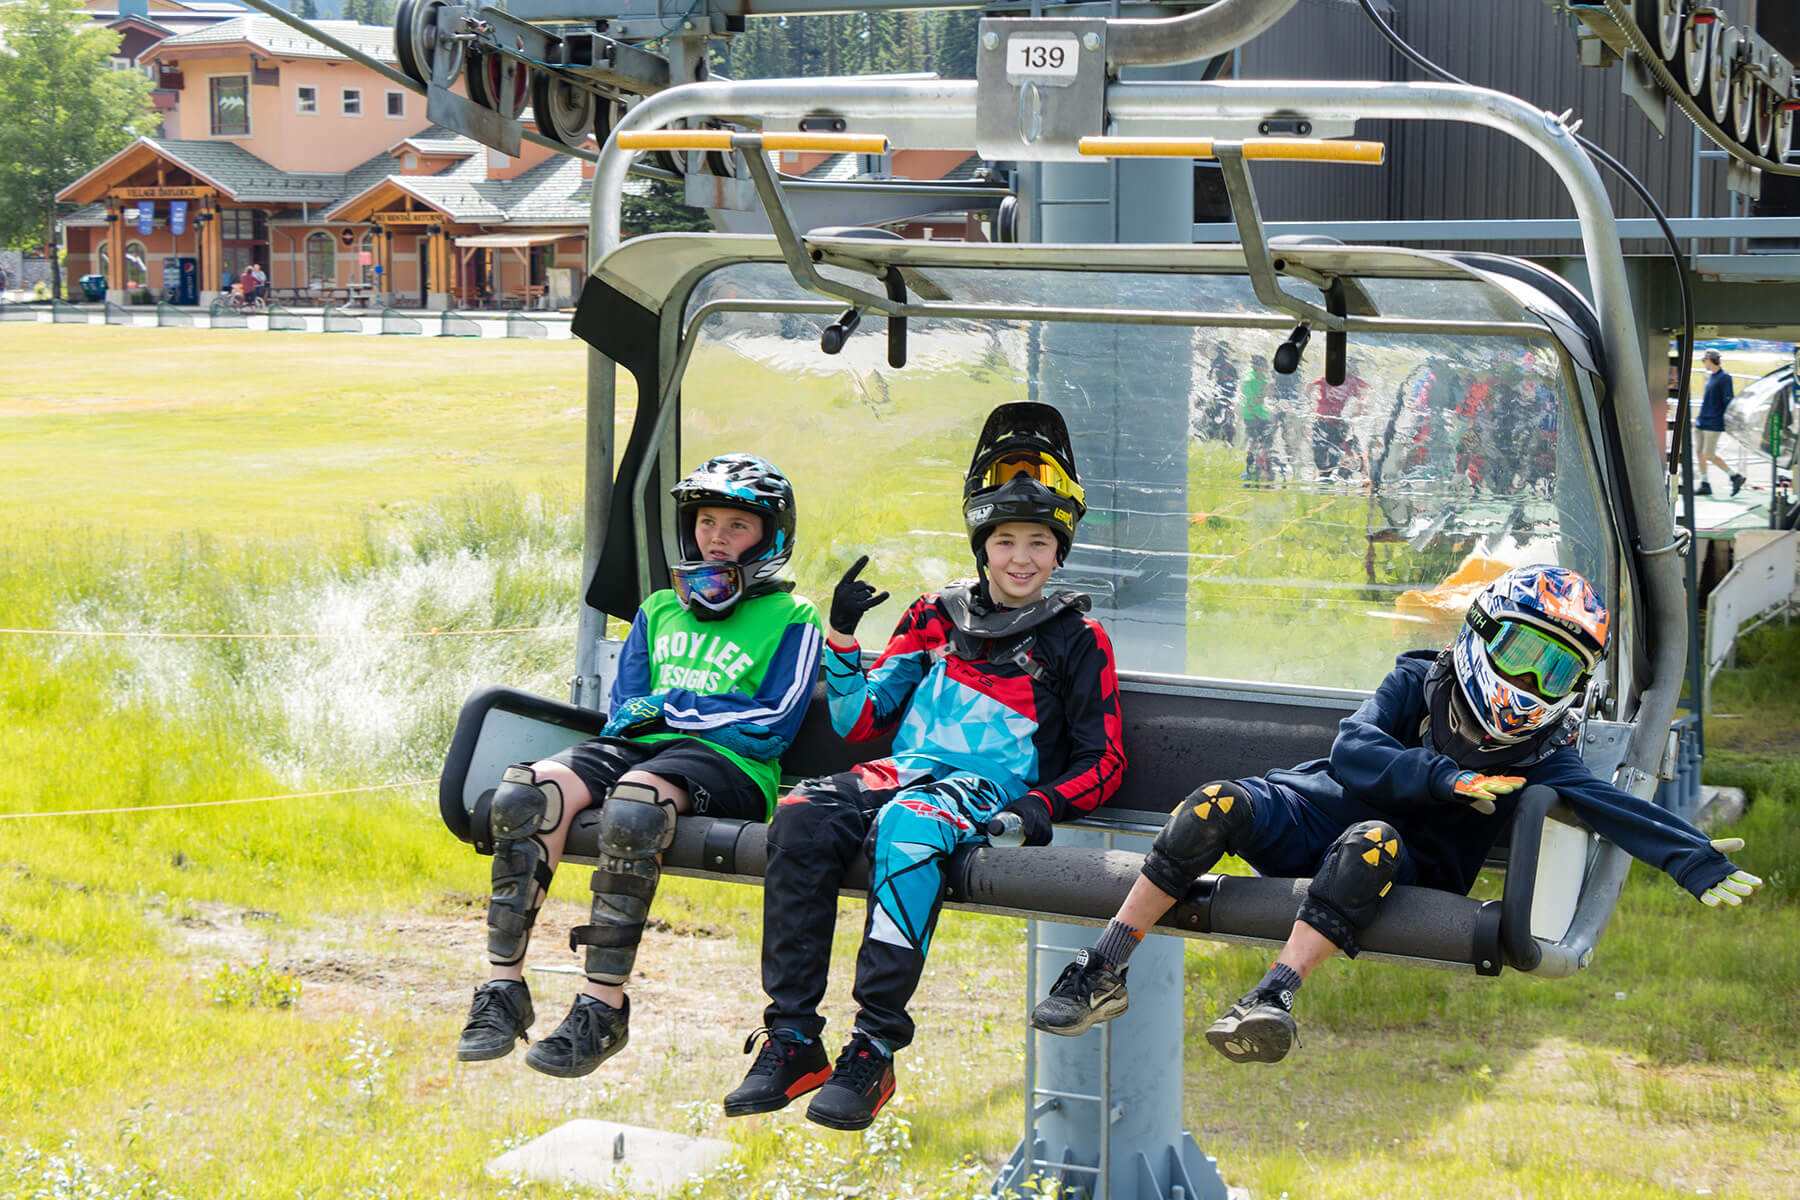 Bike Park Chairlift